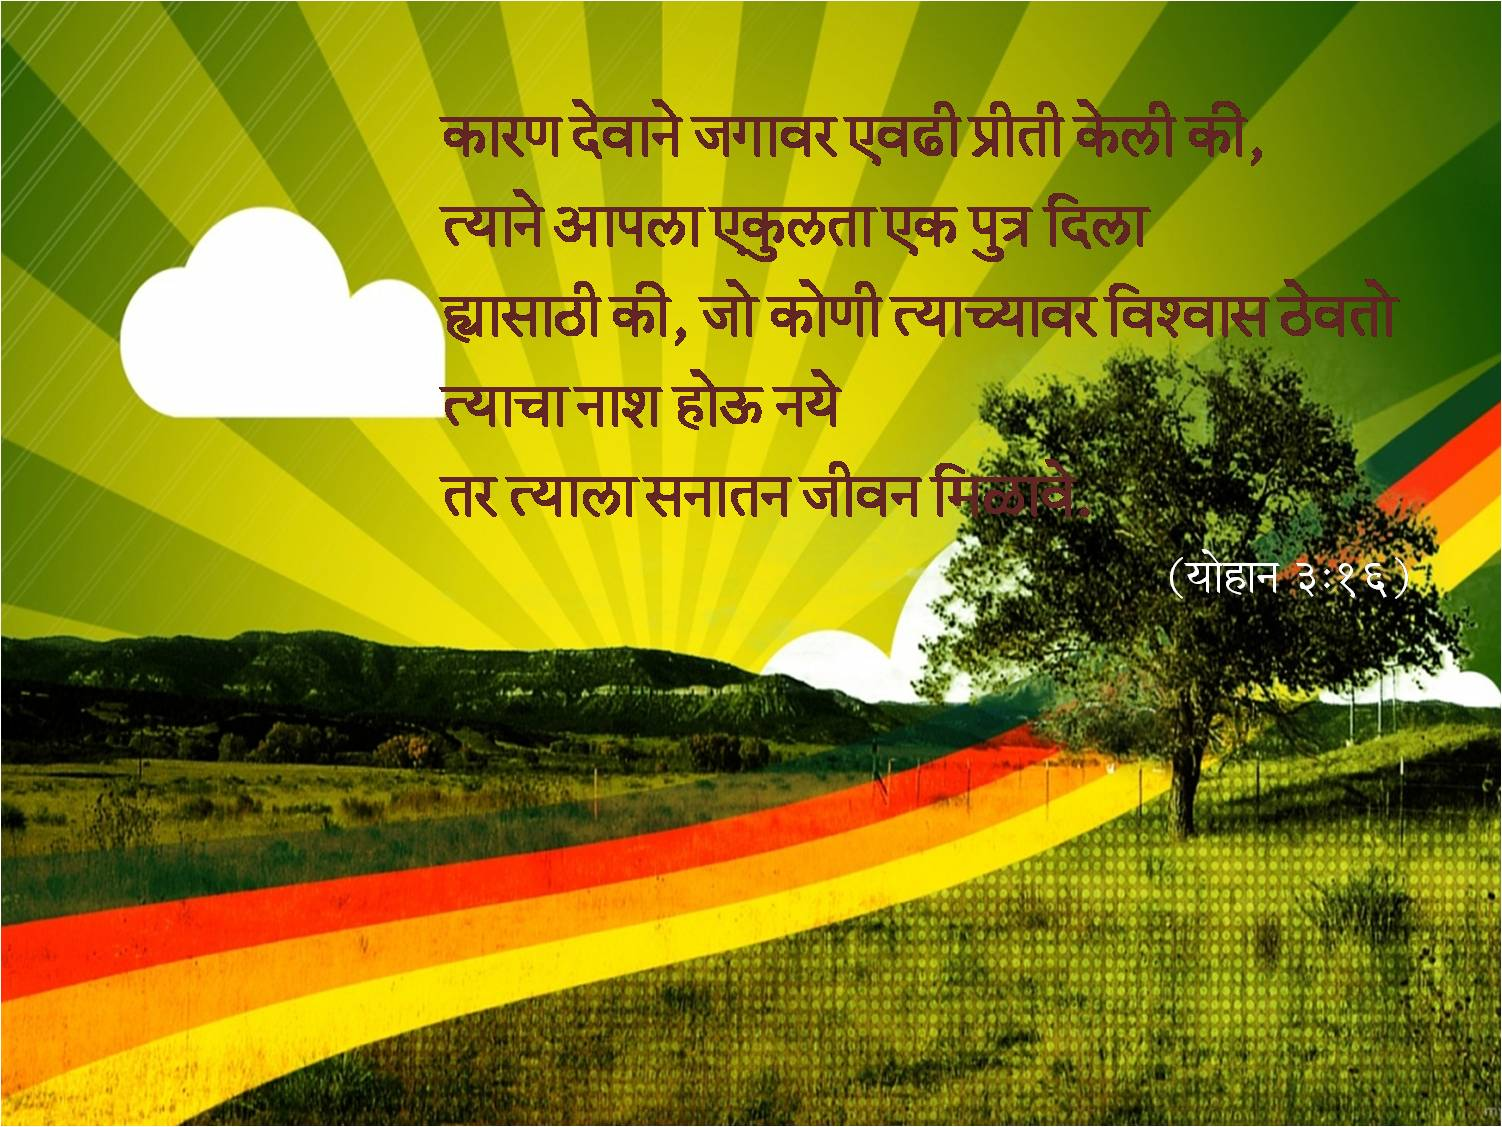 Live Wallpaper Hd 3d For Pc Download Marathi Images Wallpapers Gallery